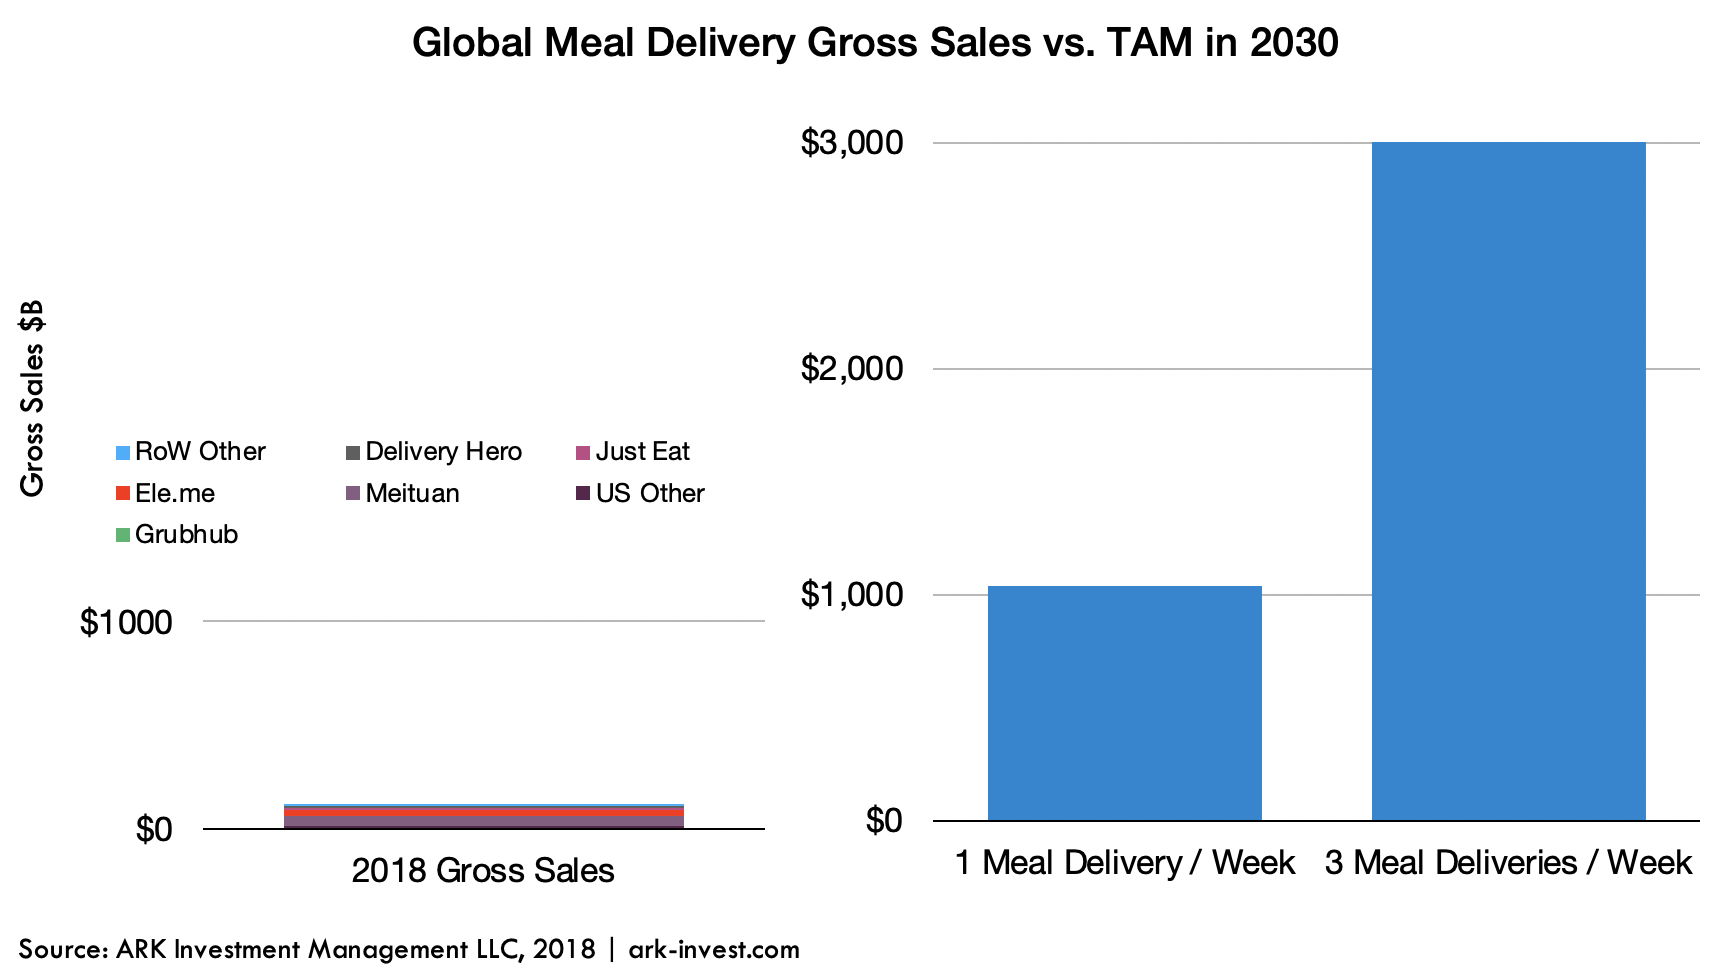 ARK Invest Global Meal Delivery Sales